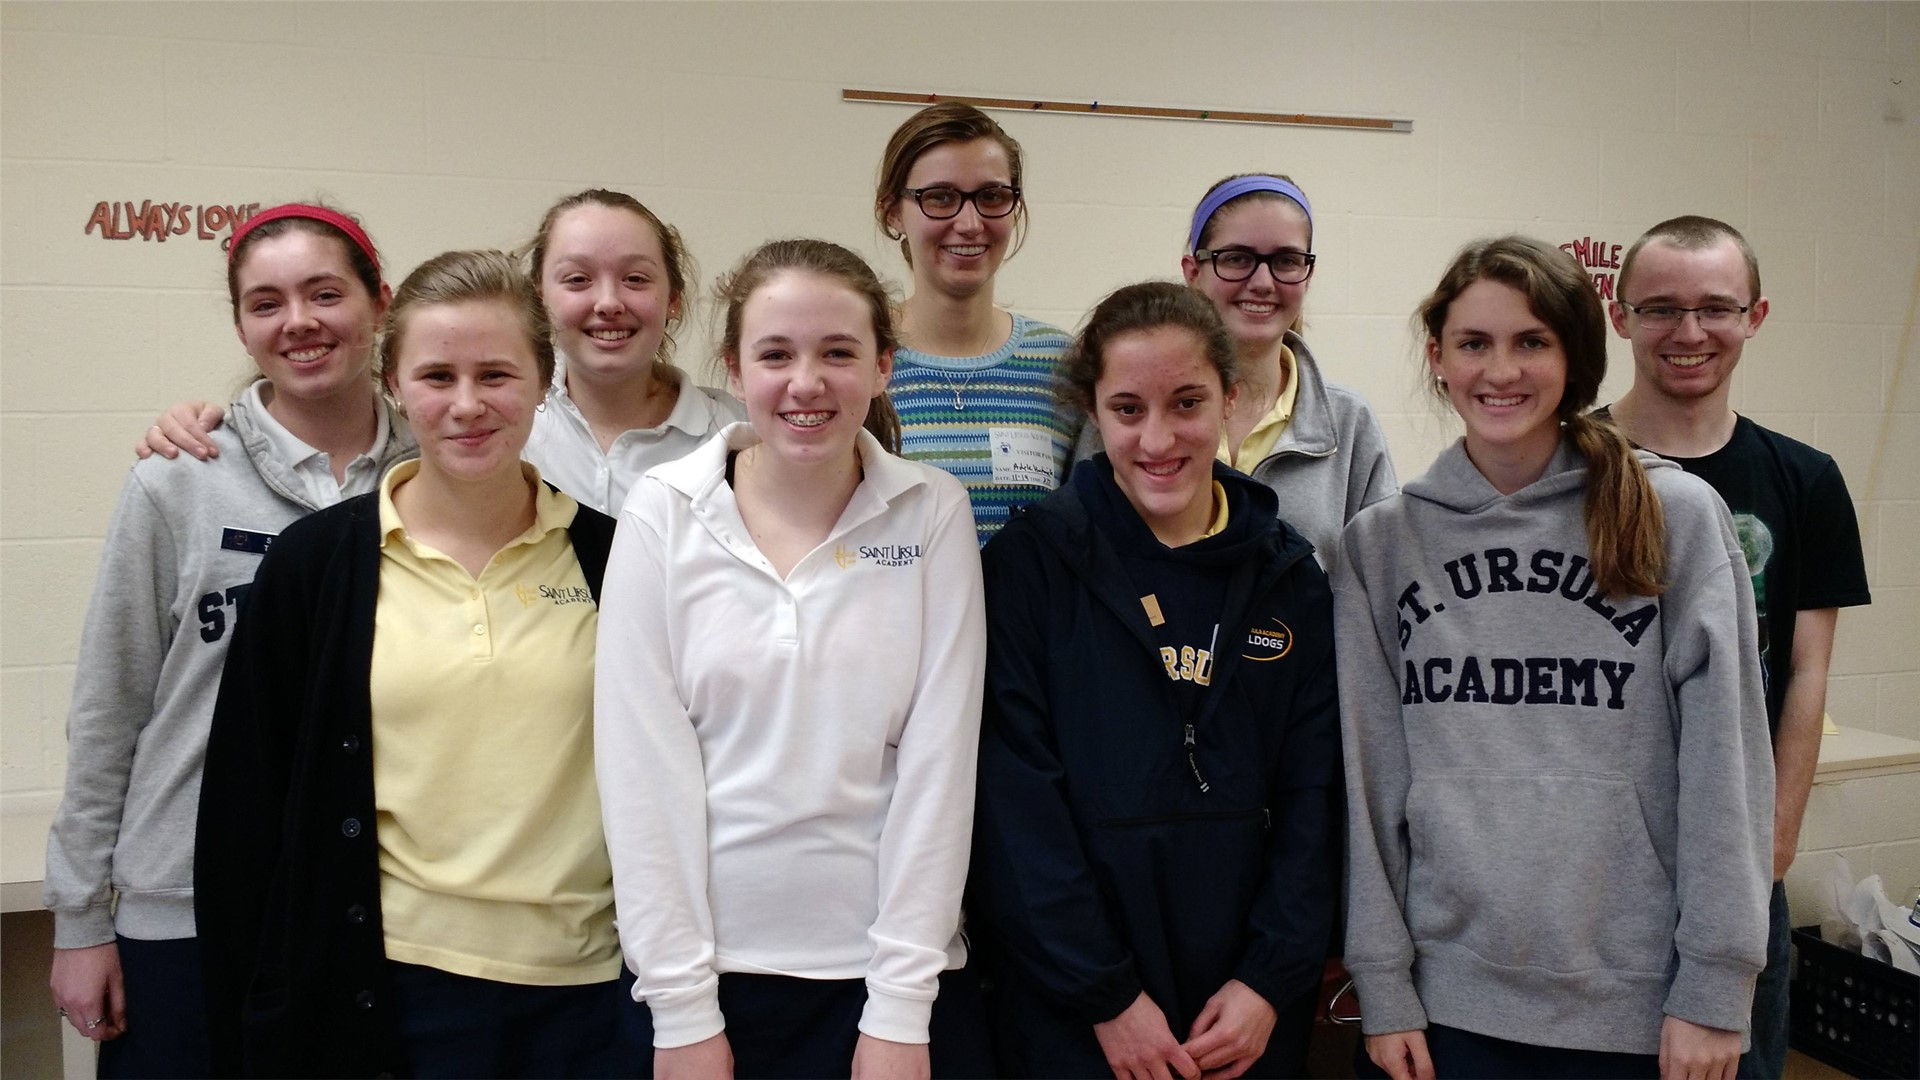 SUA Students recently participated in after-school Technology classes